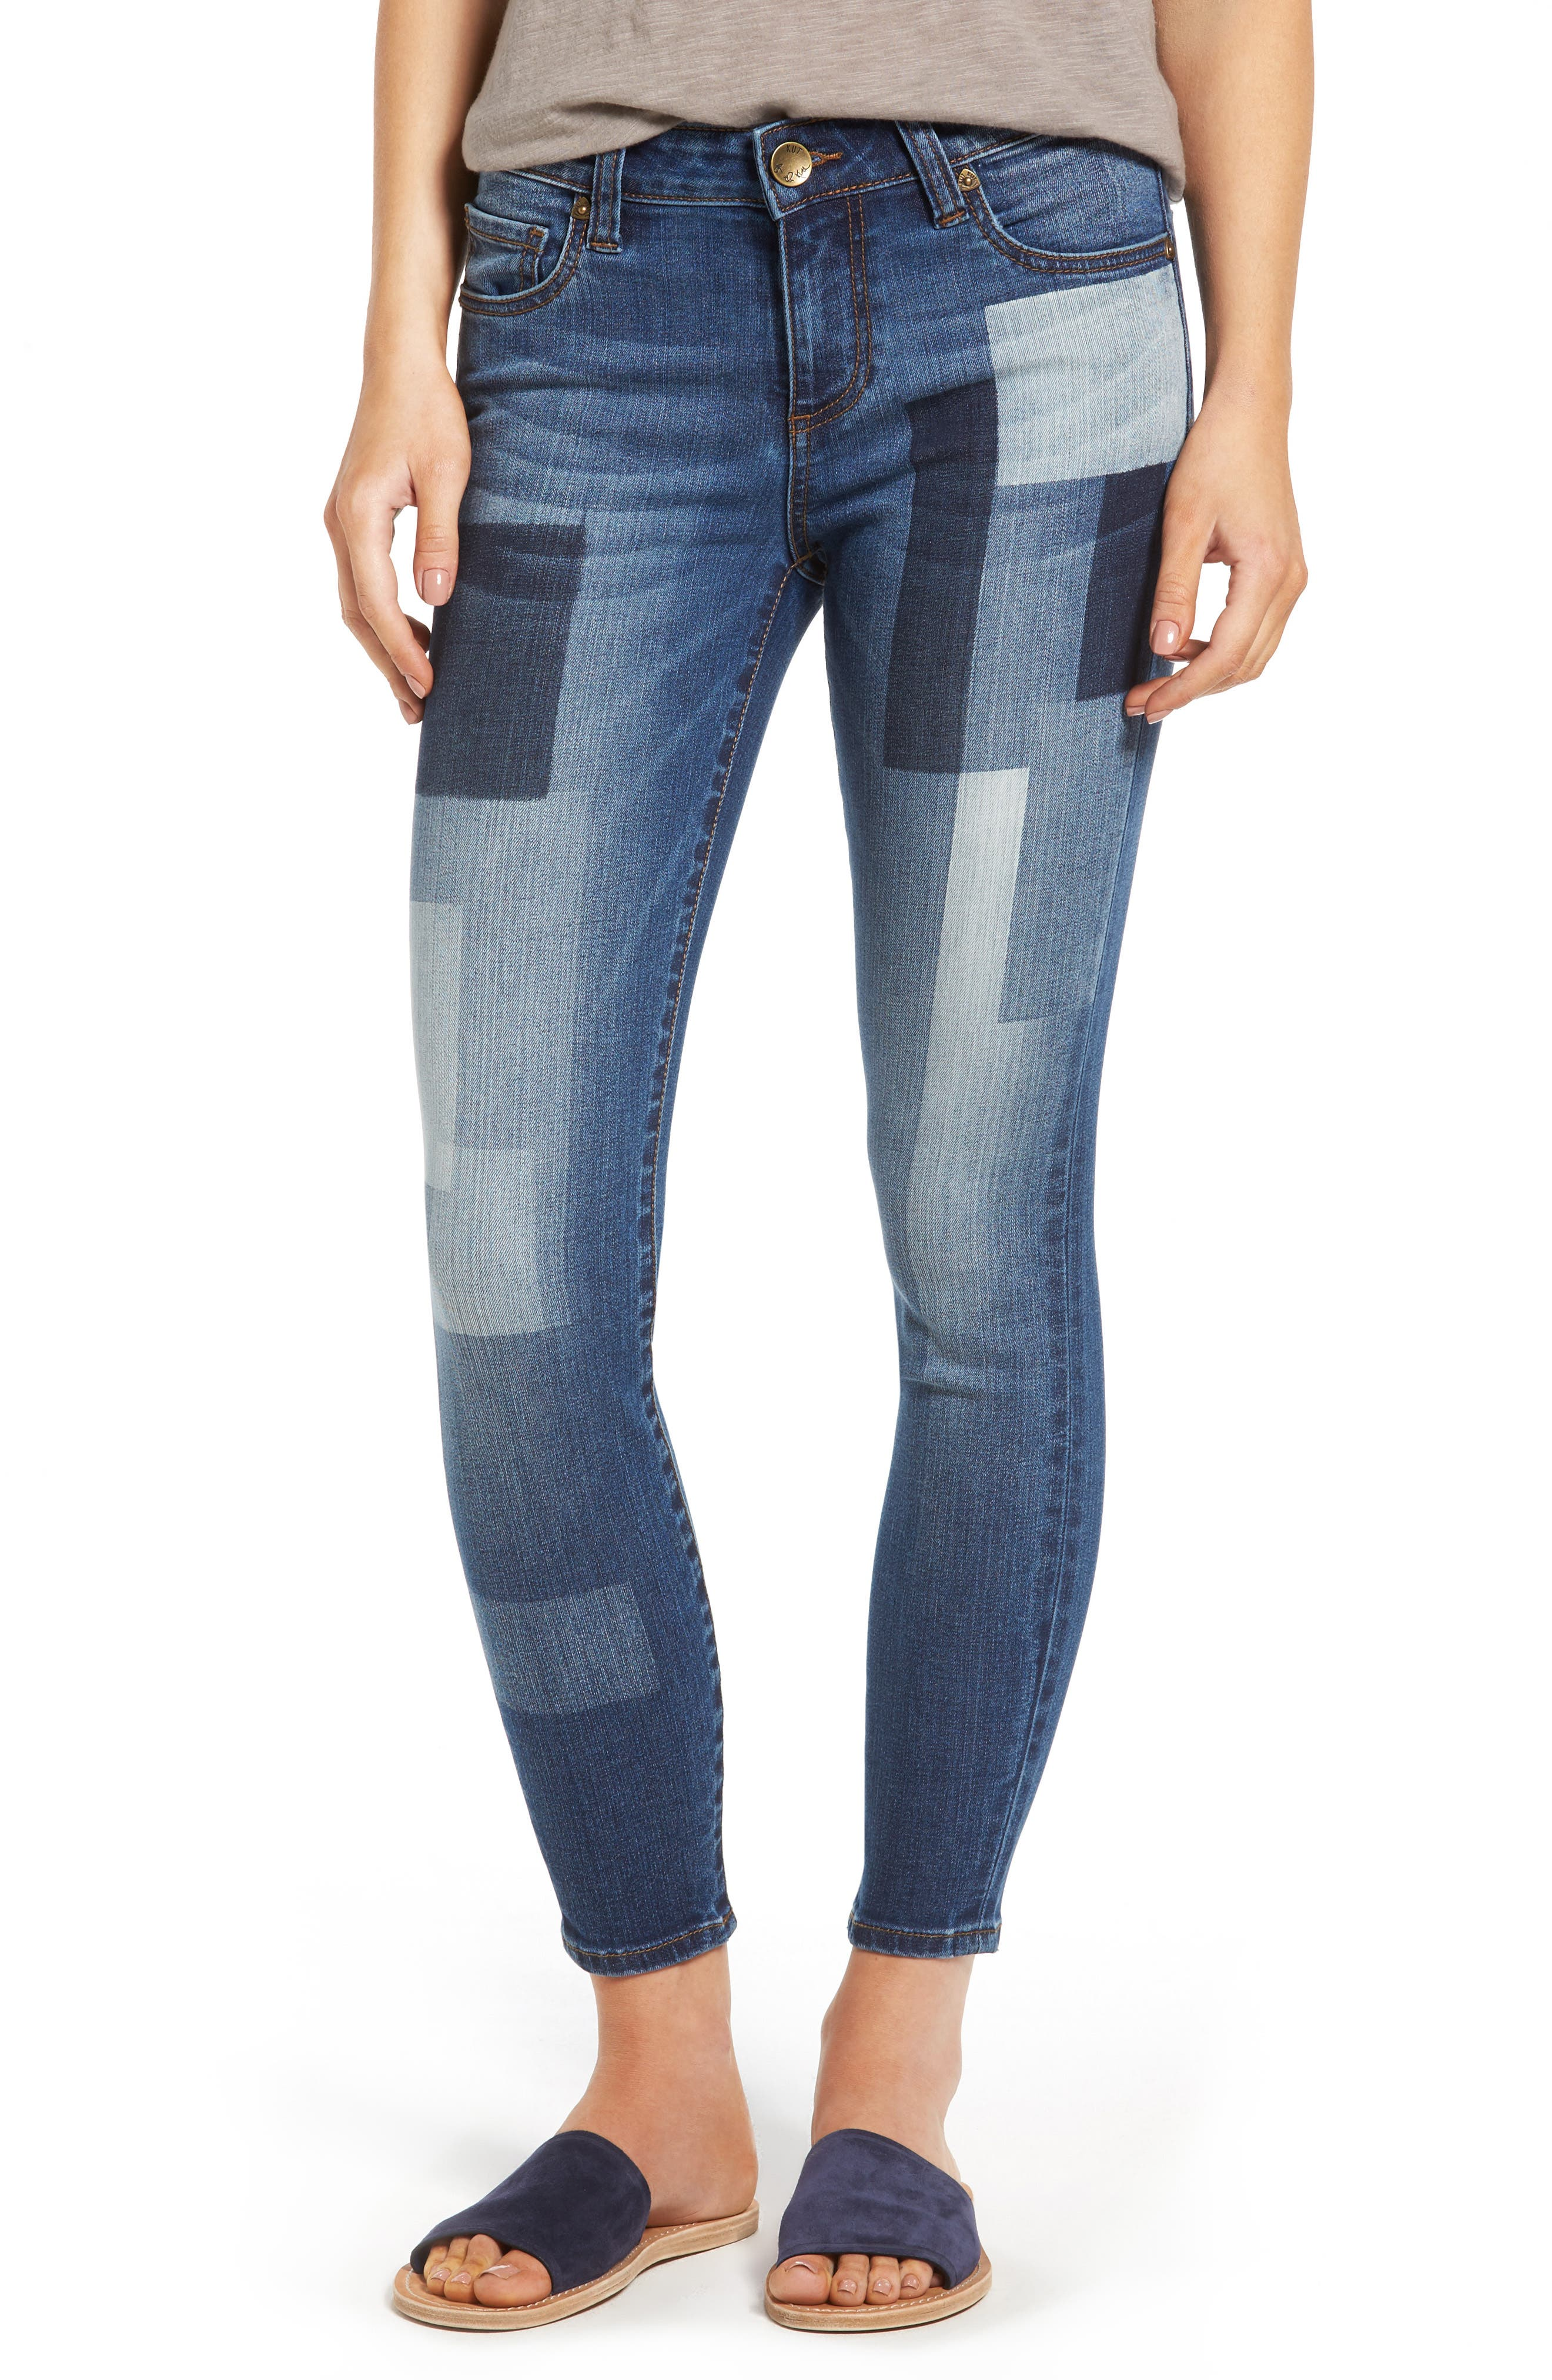 Main Image - KUT from the Kloth Patchwork Fade Skinny Jeans (Coequal/Dark Stone)